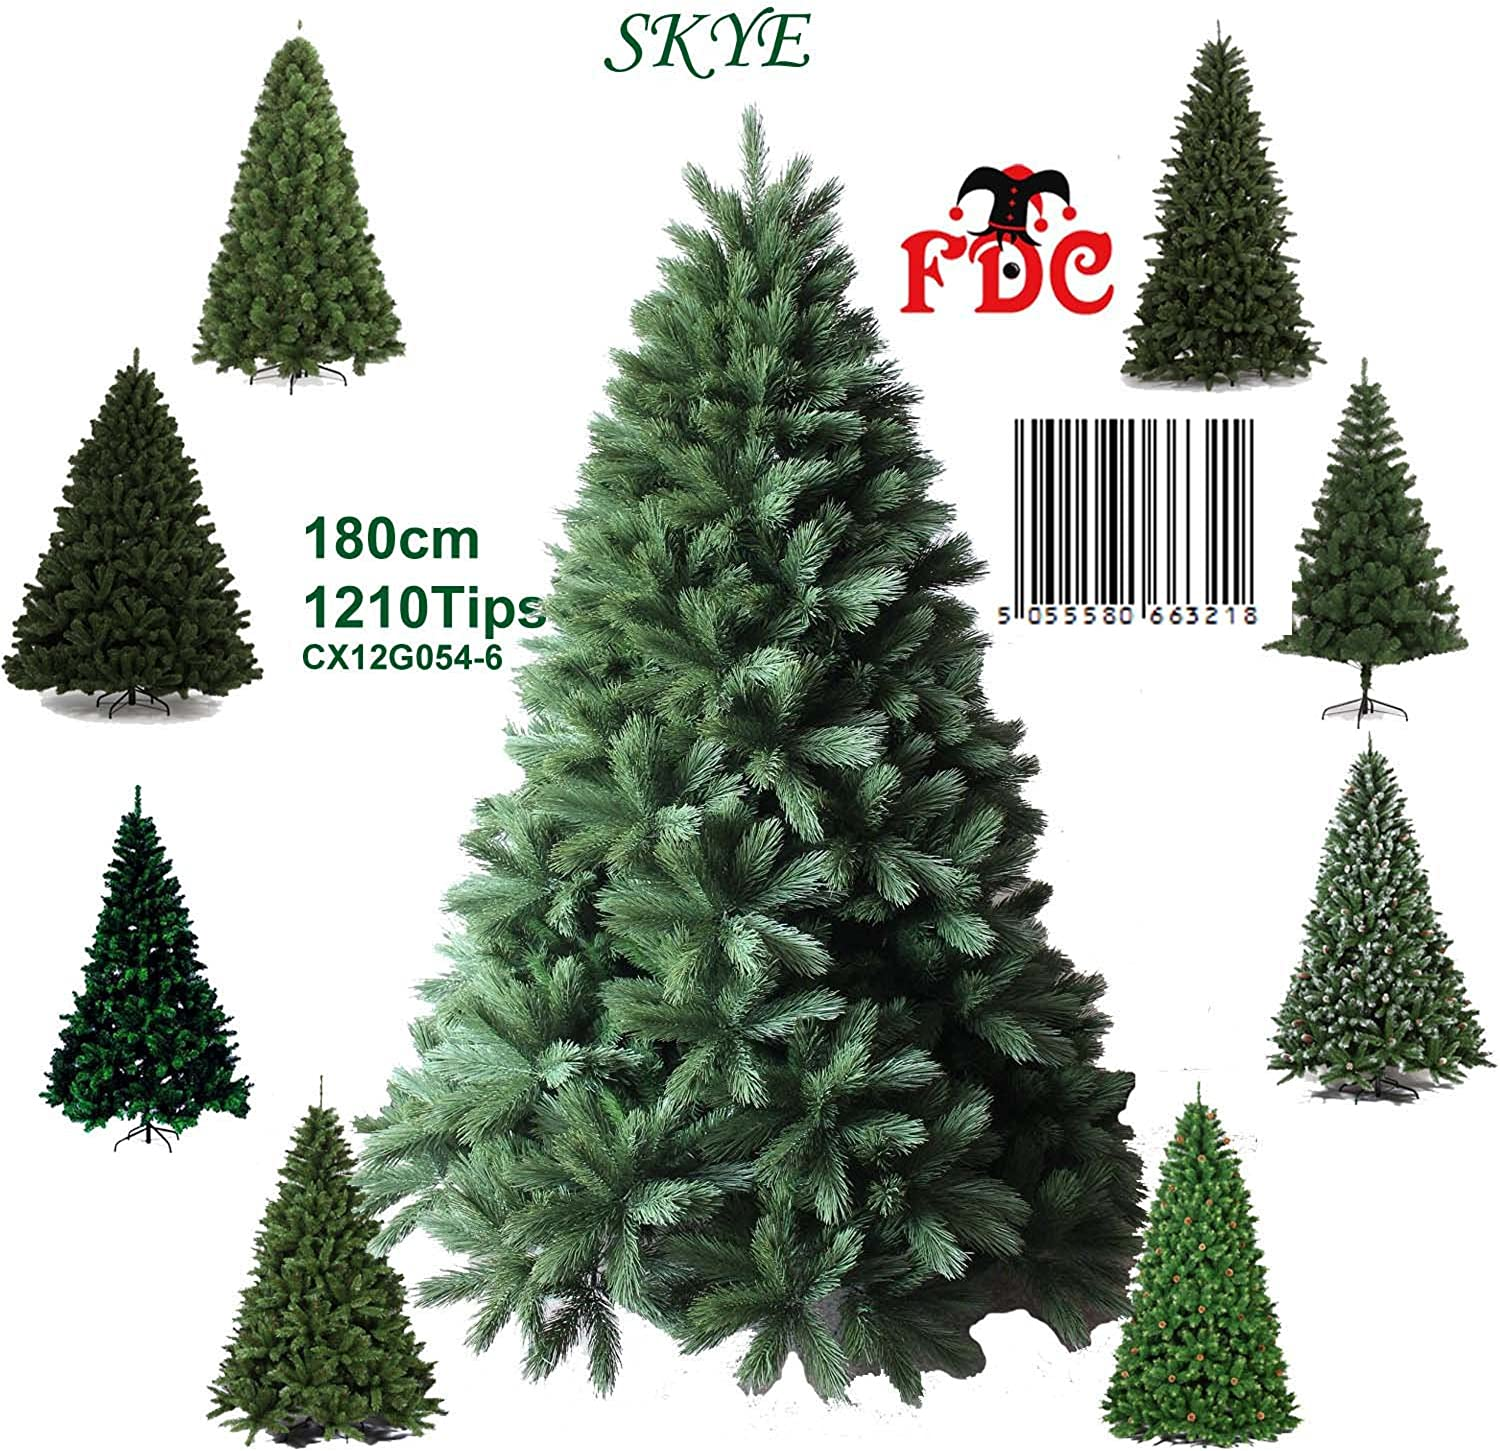 Luxury Green Artificial Christmas Tree Skye 1.8m